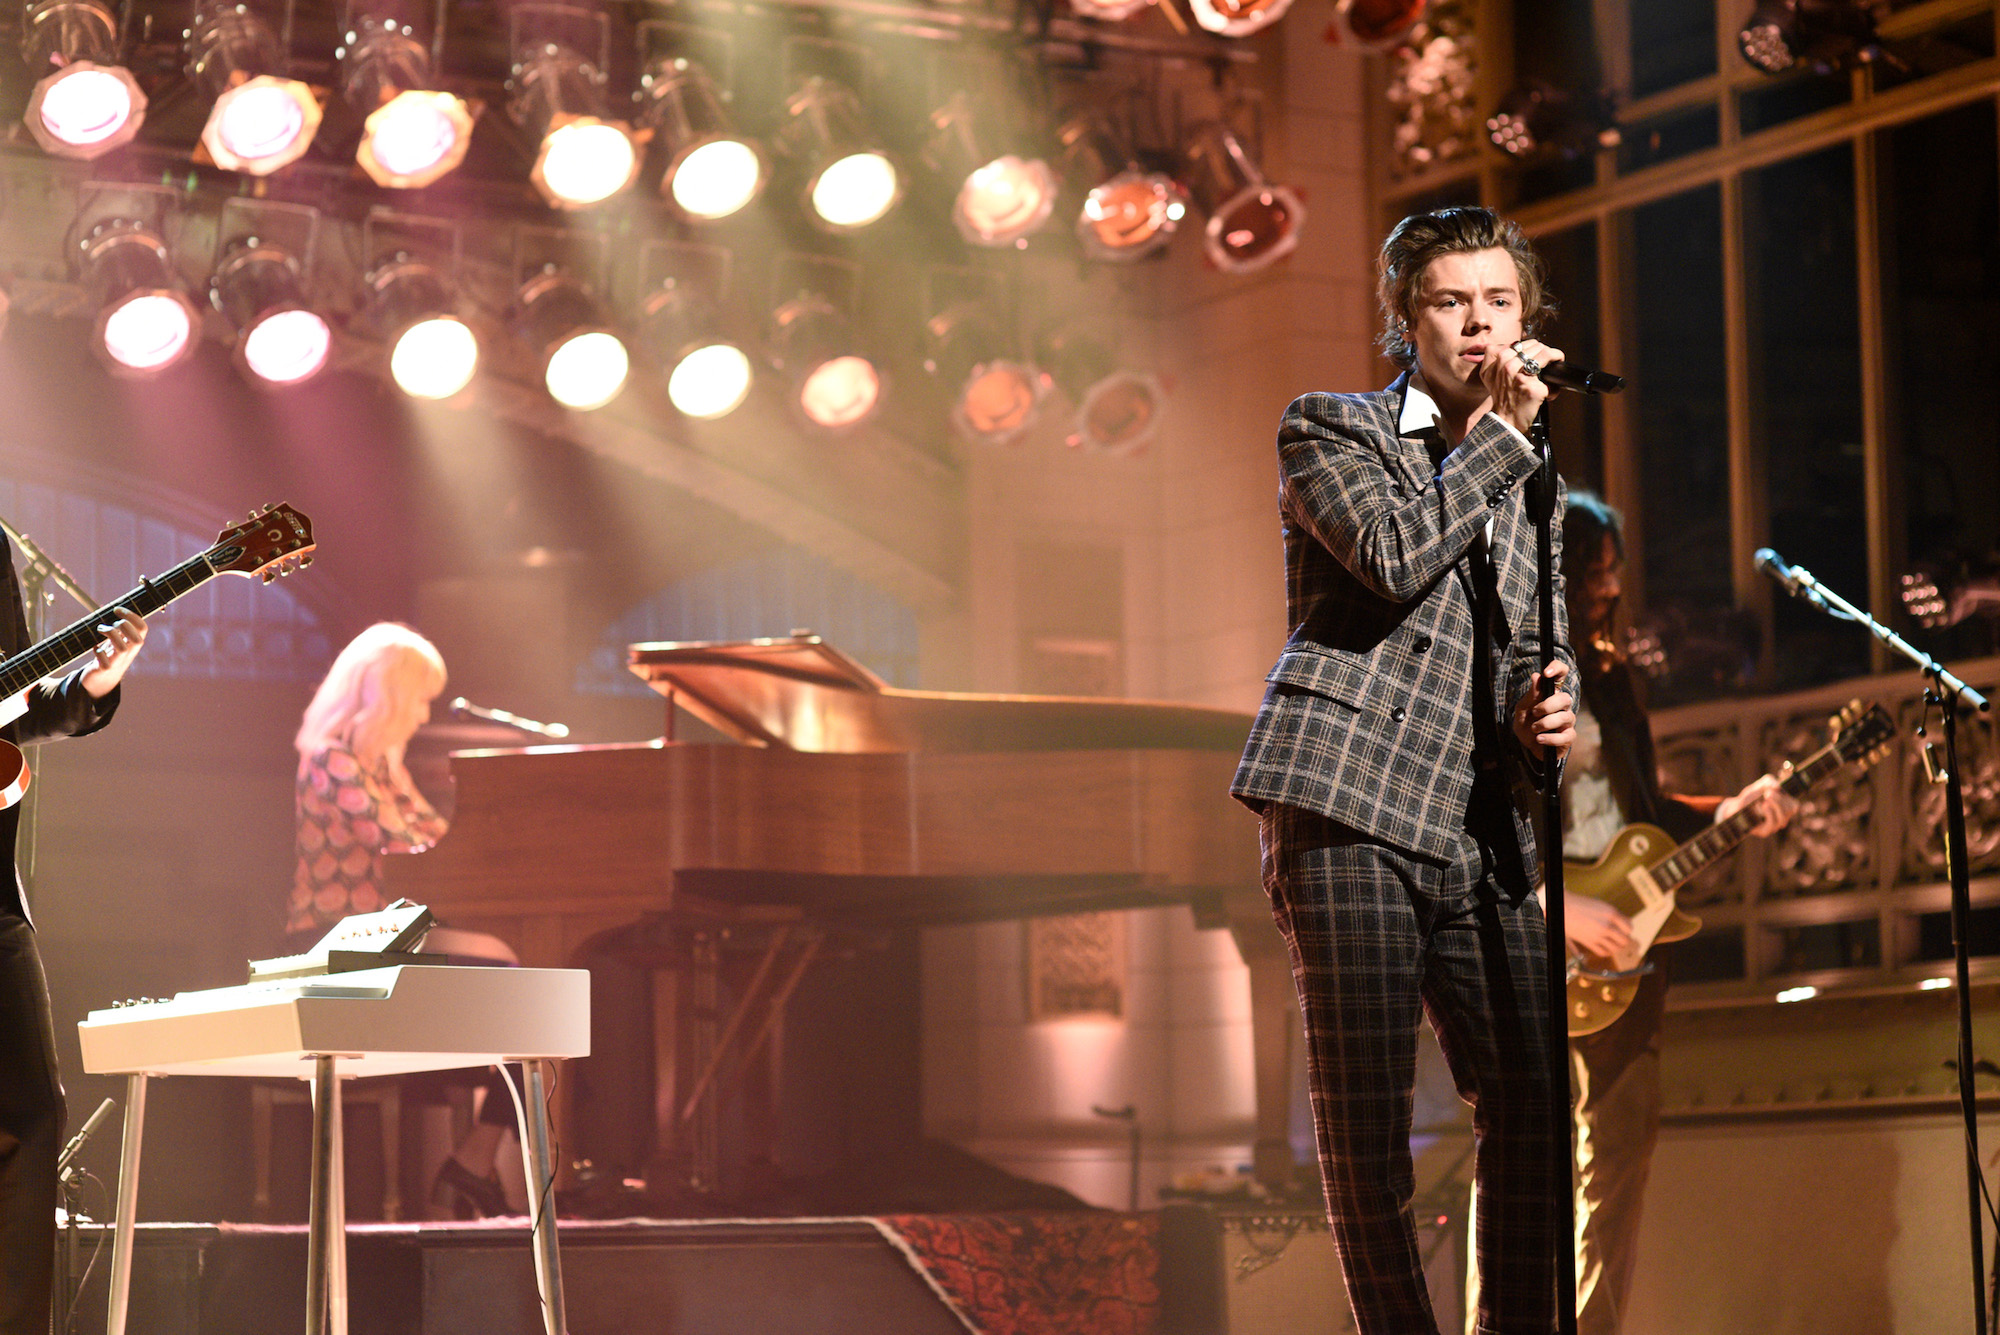 """Harry Styles performed """"Sign of the Times"""" on Jimmy Fallon's episode of 'Saturday Night Live' on April 15, 2017"""